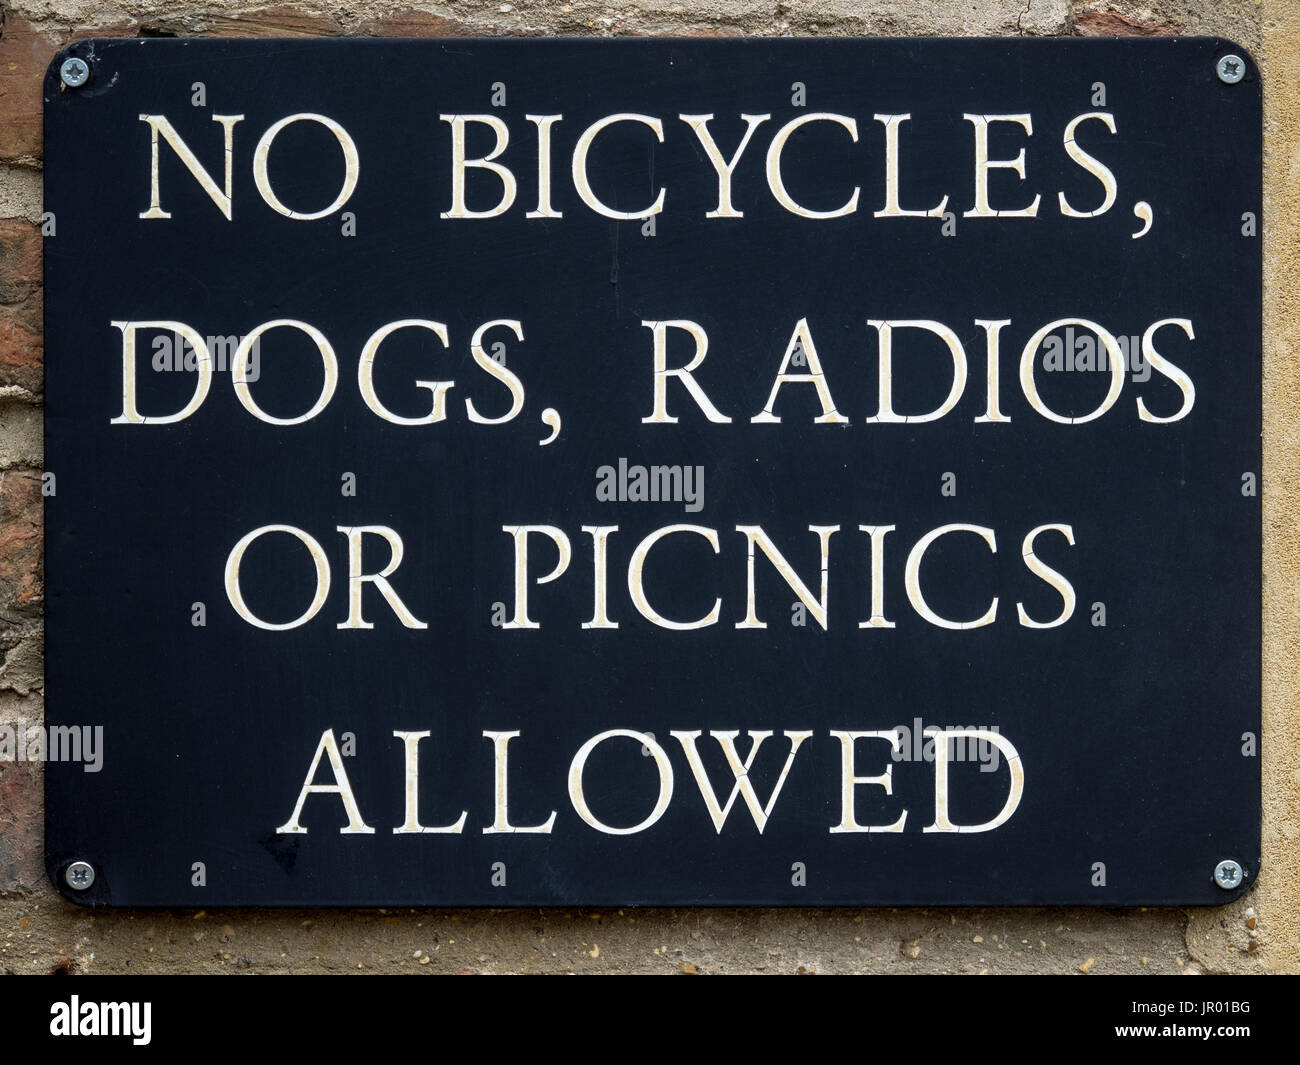 Cambridge College Restrictions Sign - No Bicycles, No Dogs, No Radios and no Picnics allowed in the college grounds - Stock Image